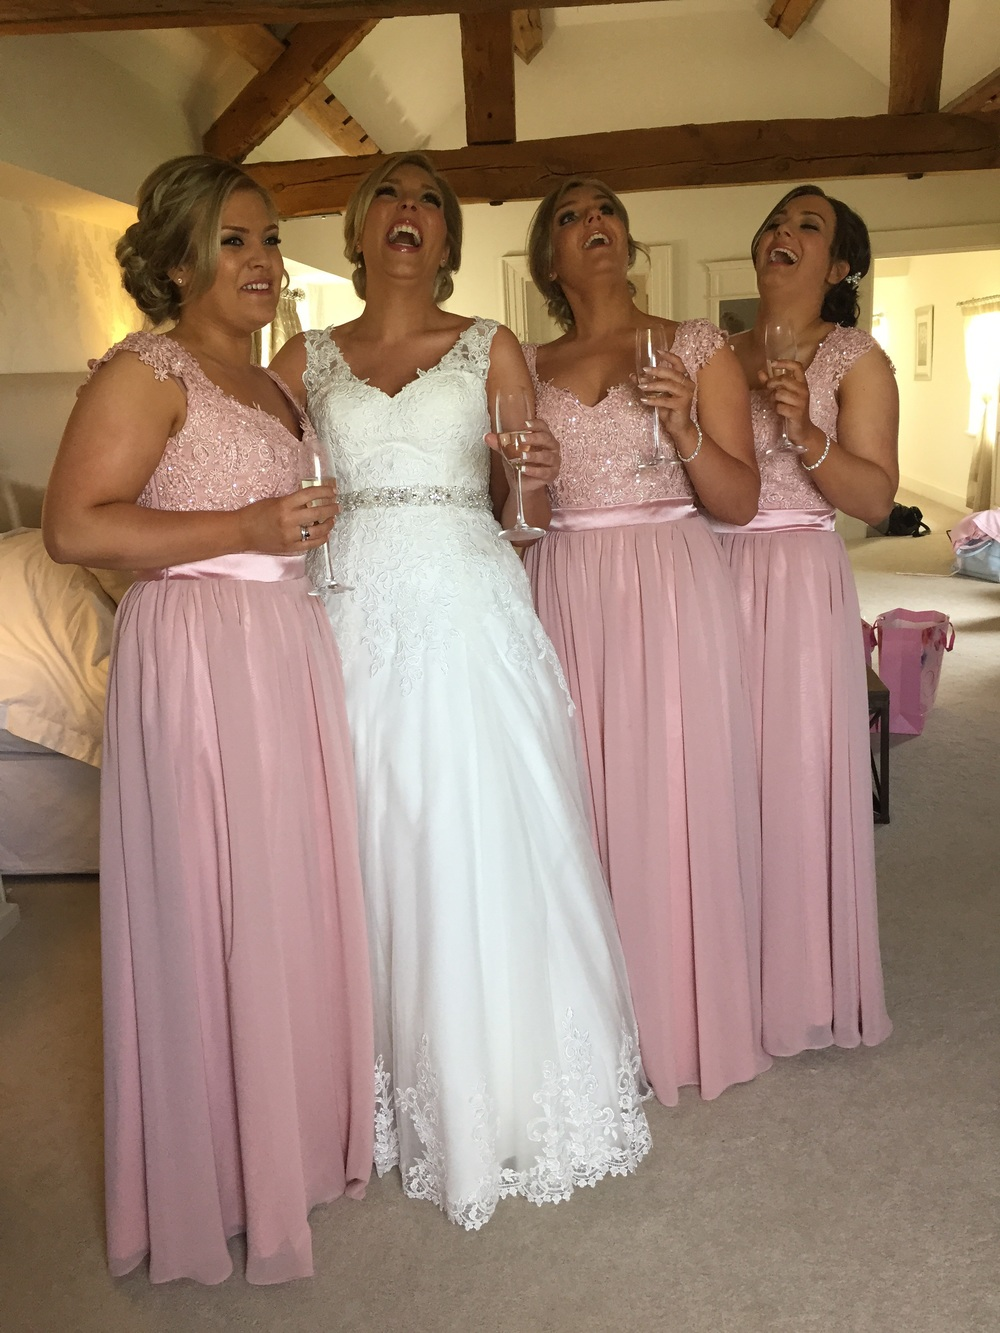 How wedding mornings should be! Glamour, bubbles and laughs a plenty!!